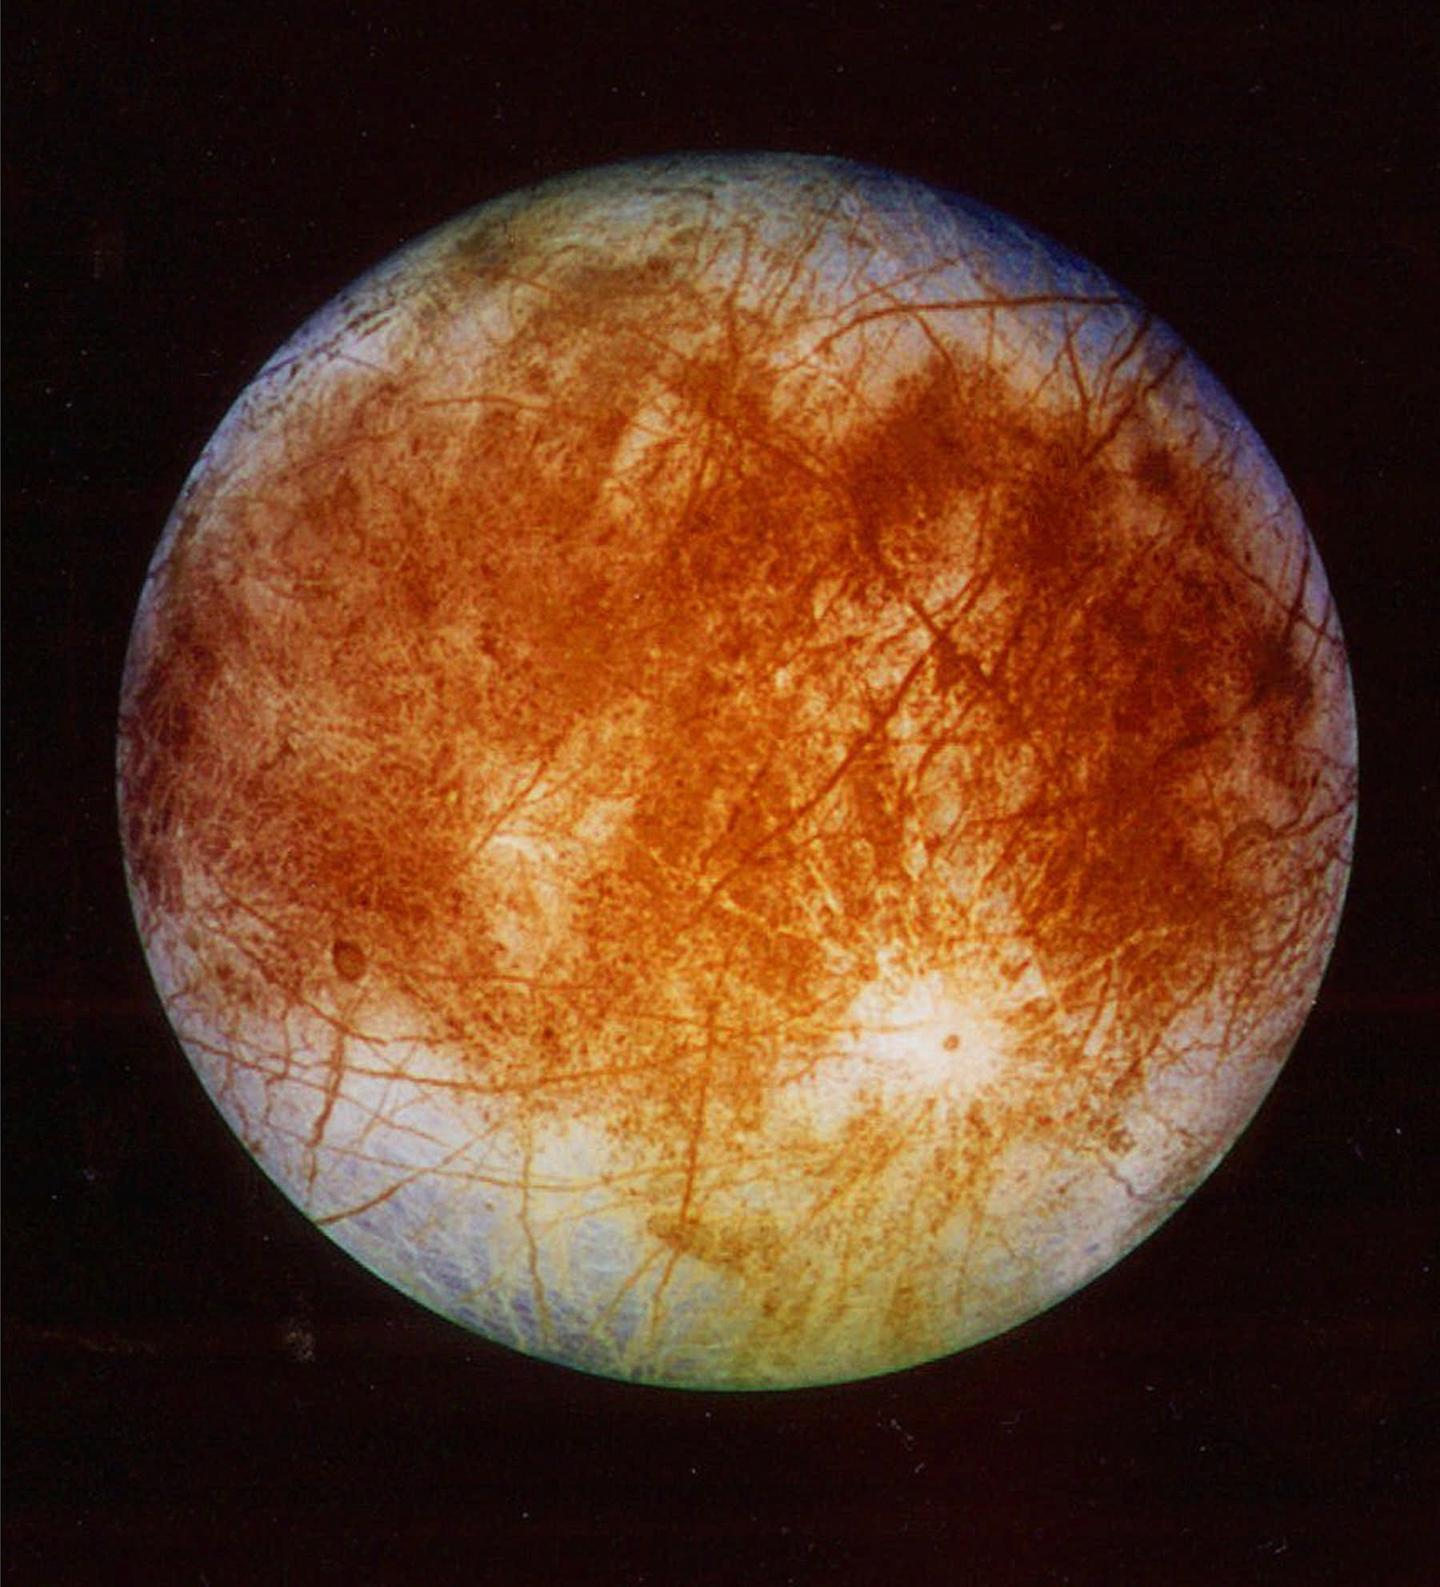 Discovery of Table Salt on Europa's Surface Boosts Hope for Life